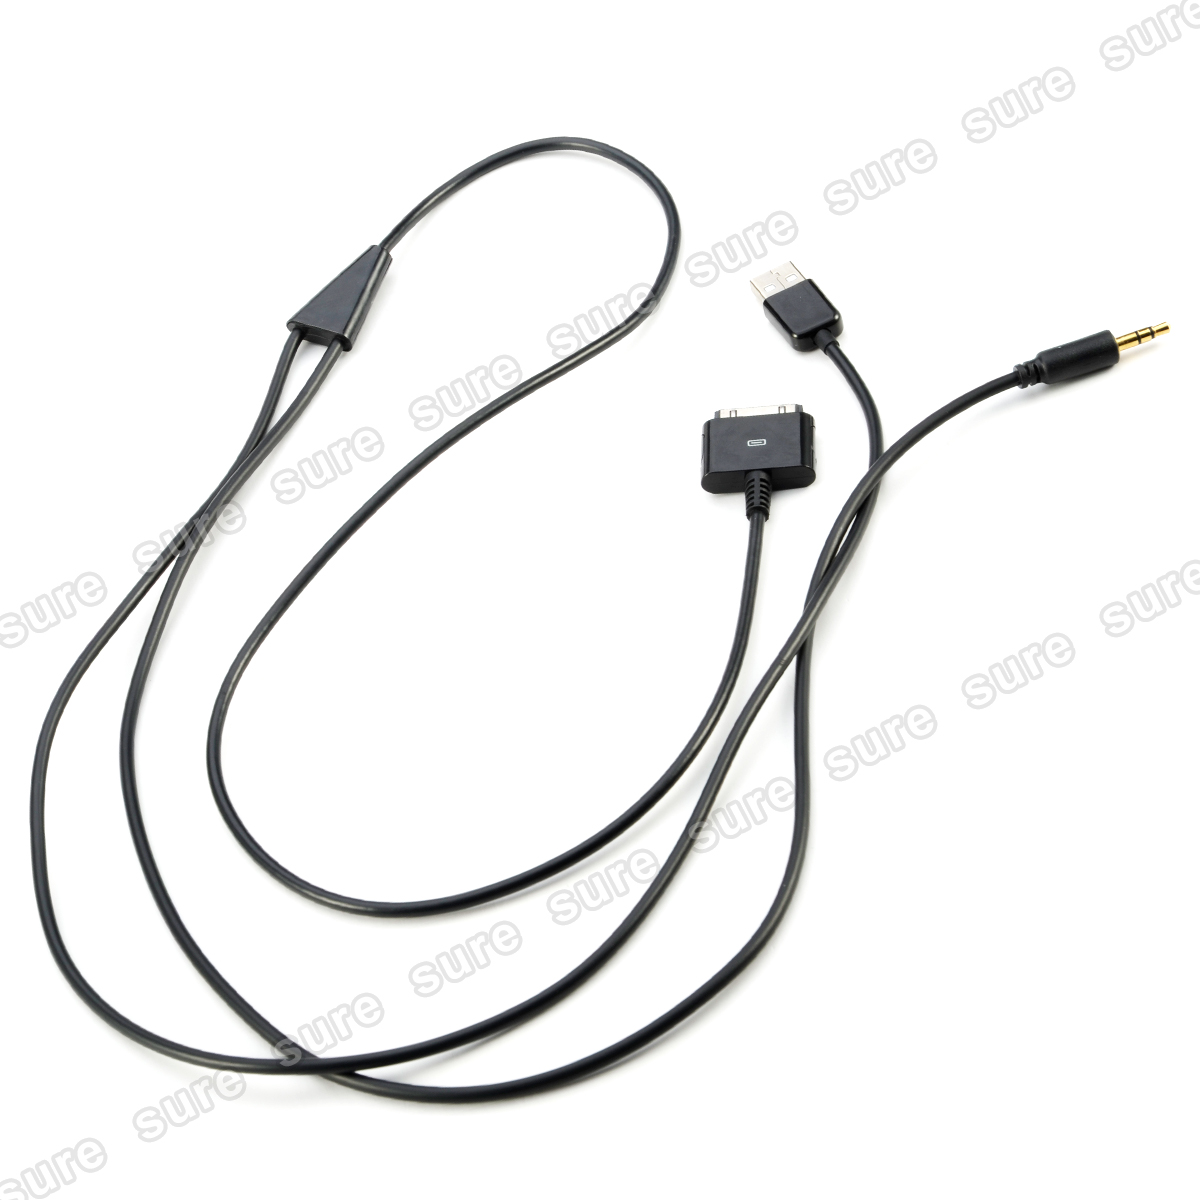 BLACK 3.5mm AUX / USB CAR Audio Cable for Apple iPhone